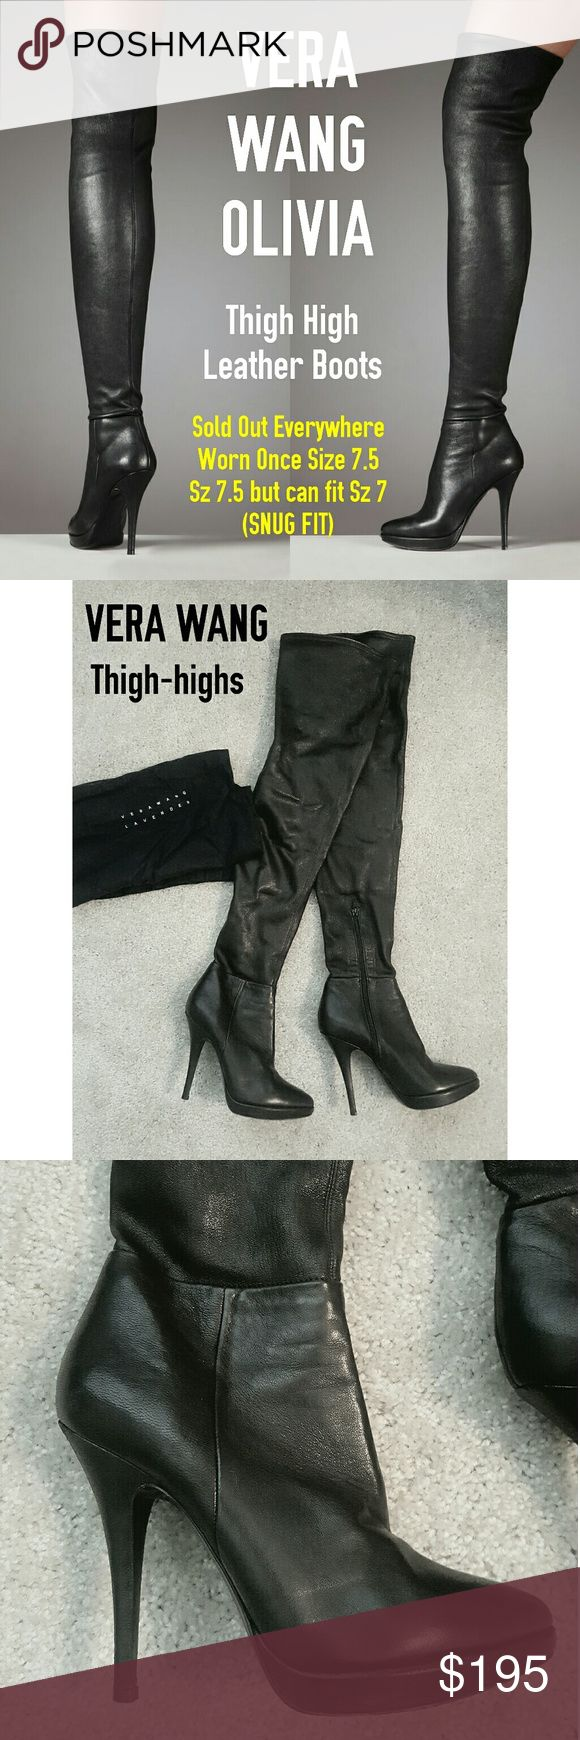 Vera wang lavender Olivia Stretch Thigh-high Boots GORGEOUS Vera Wang thigh-highs that stretch comfortably. The leather is soft but a crushed leather that is NOT super shiny. Very elegant and looks GREAT under tight skirts! Looks like panyhose boots. I wore them once and everyone stopped me BUT wrong size! I am a 7.5-8 and these are a 7.5 BUT fits like a 7-7.5.   Sexy yet classy which are hard to find. I am STILL searching for one in my size :'(  No marks. Kept in the Vera Wang cloth bag it…